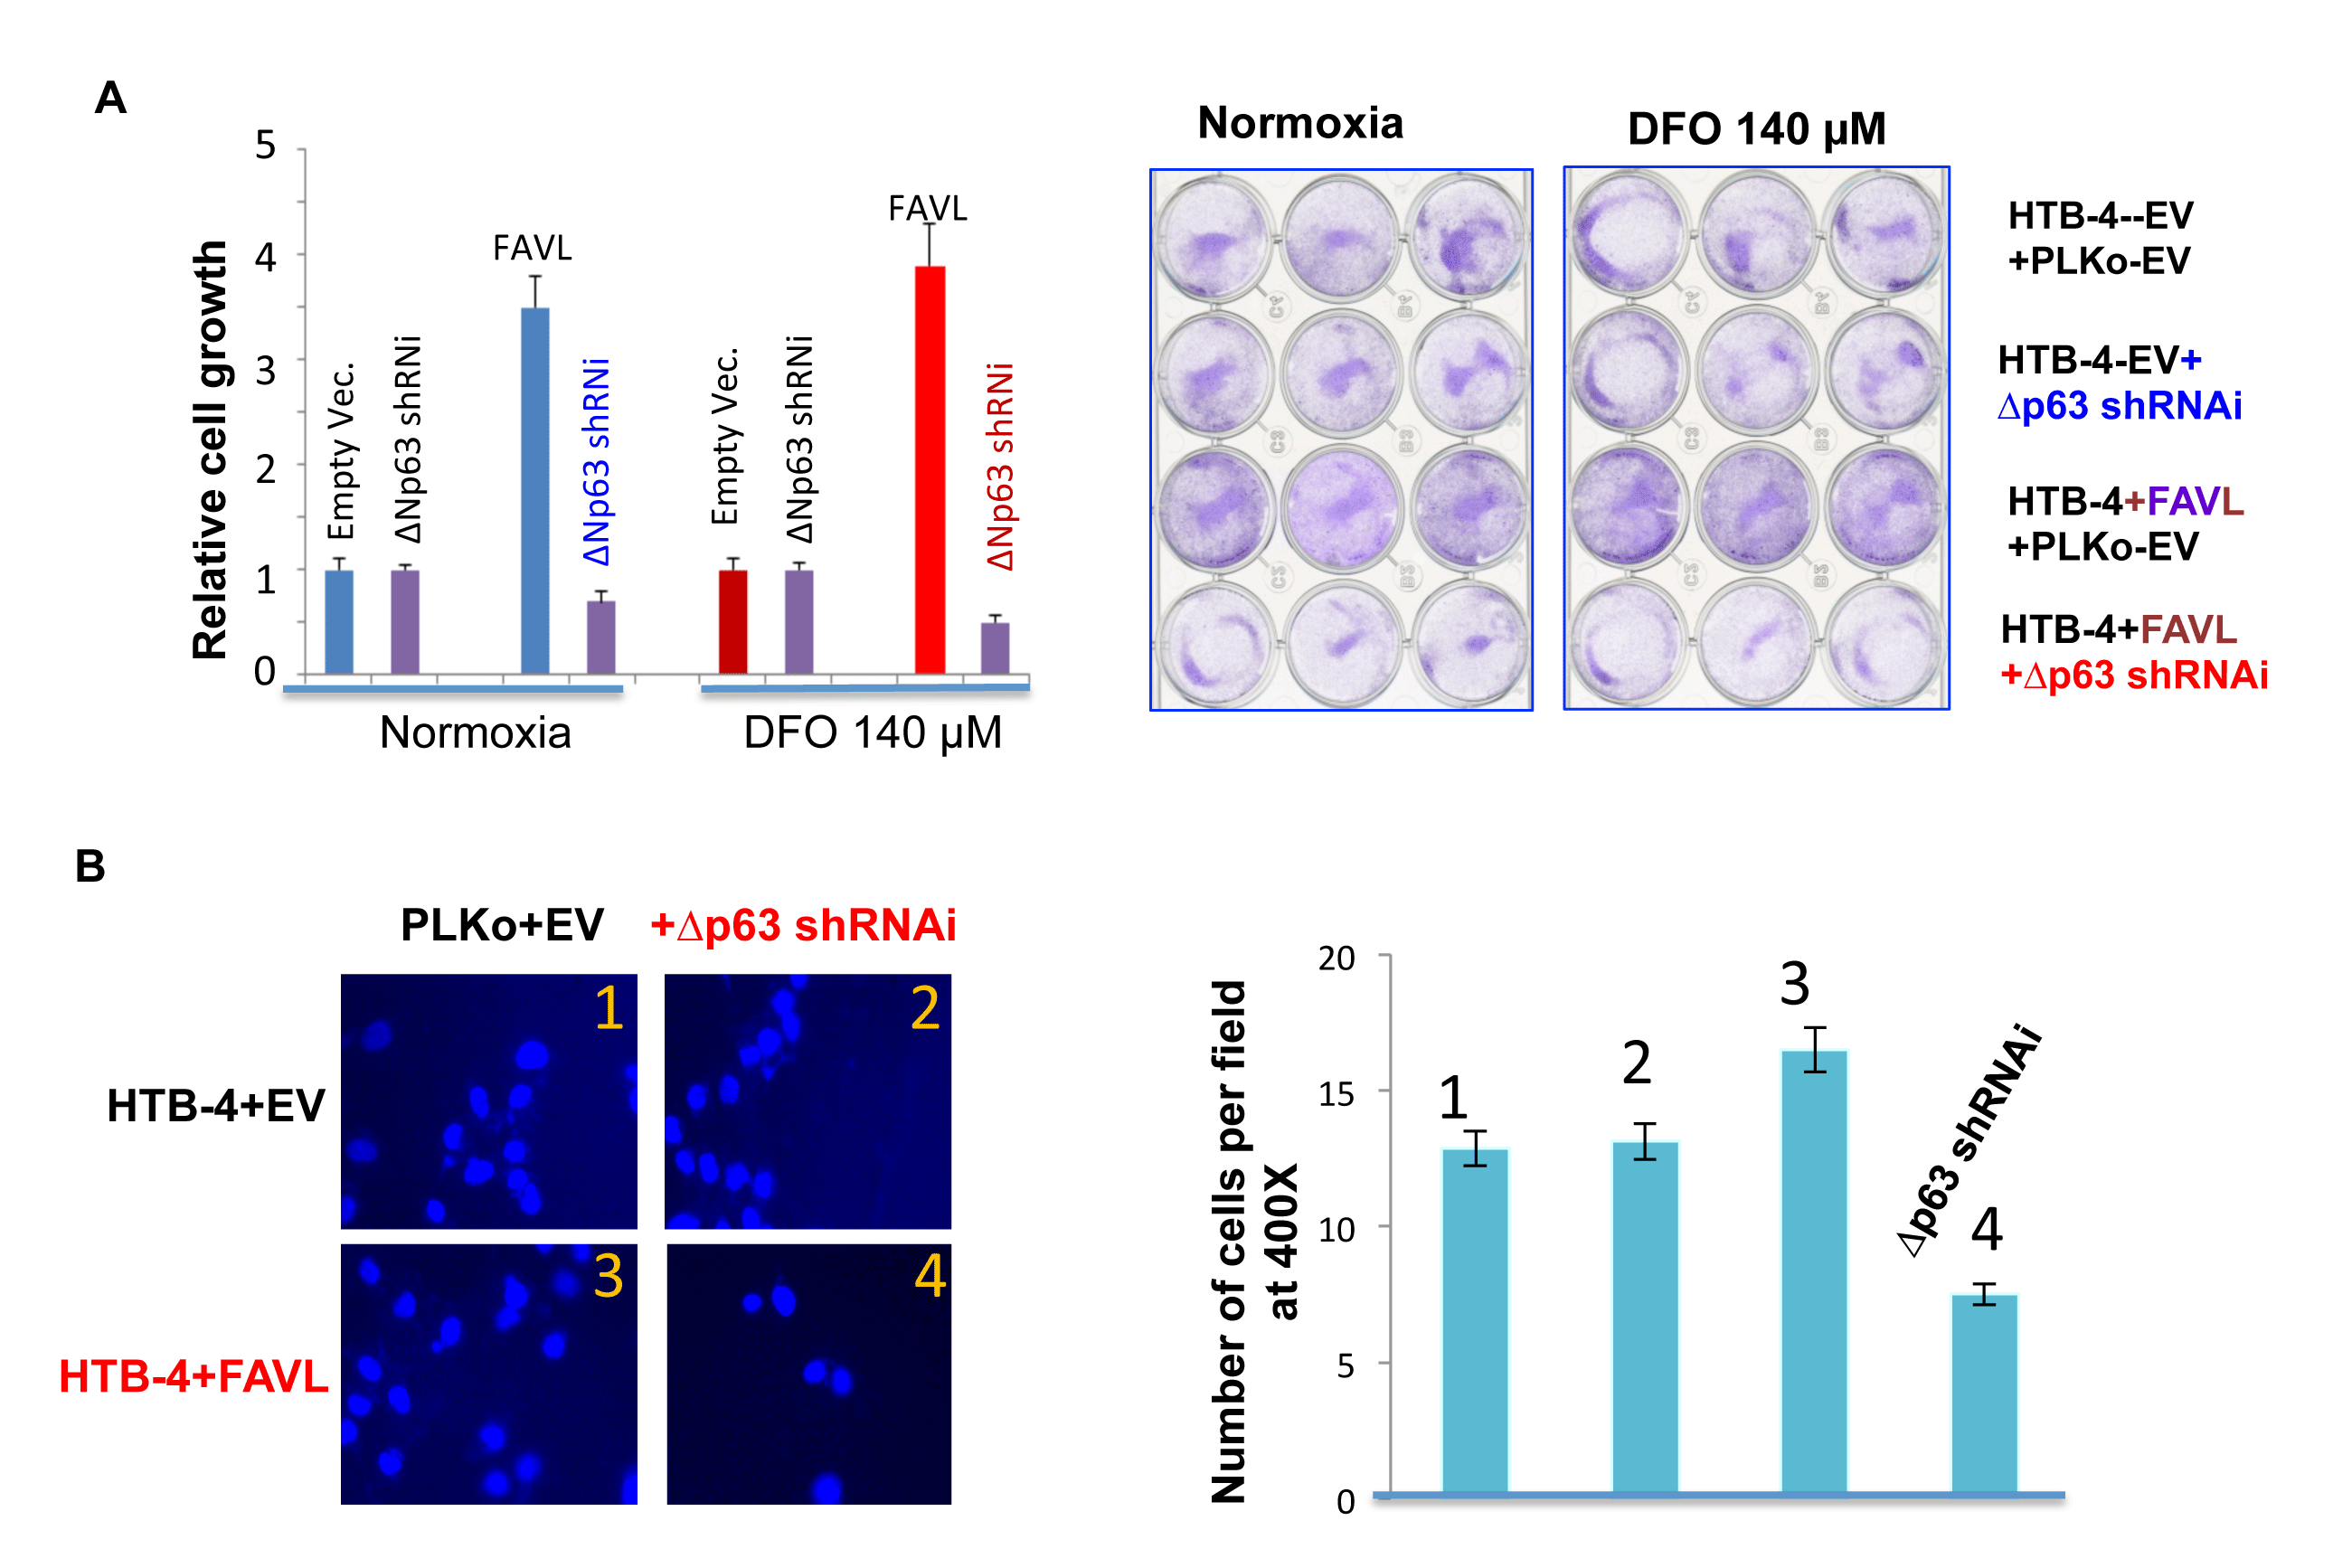 Silencing ∆Np63 mRNA expression substantially abrogates the tumorigenic potential of HTB-4 bladder cancer cells triggered by FA pathway impaired by elevated FAVL.